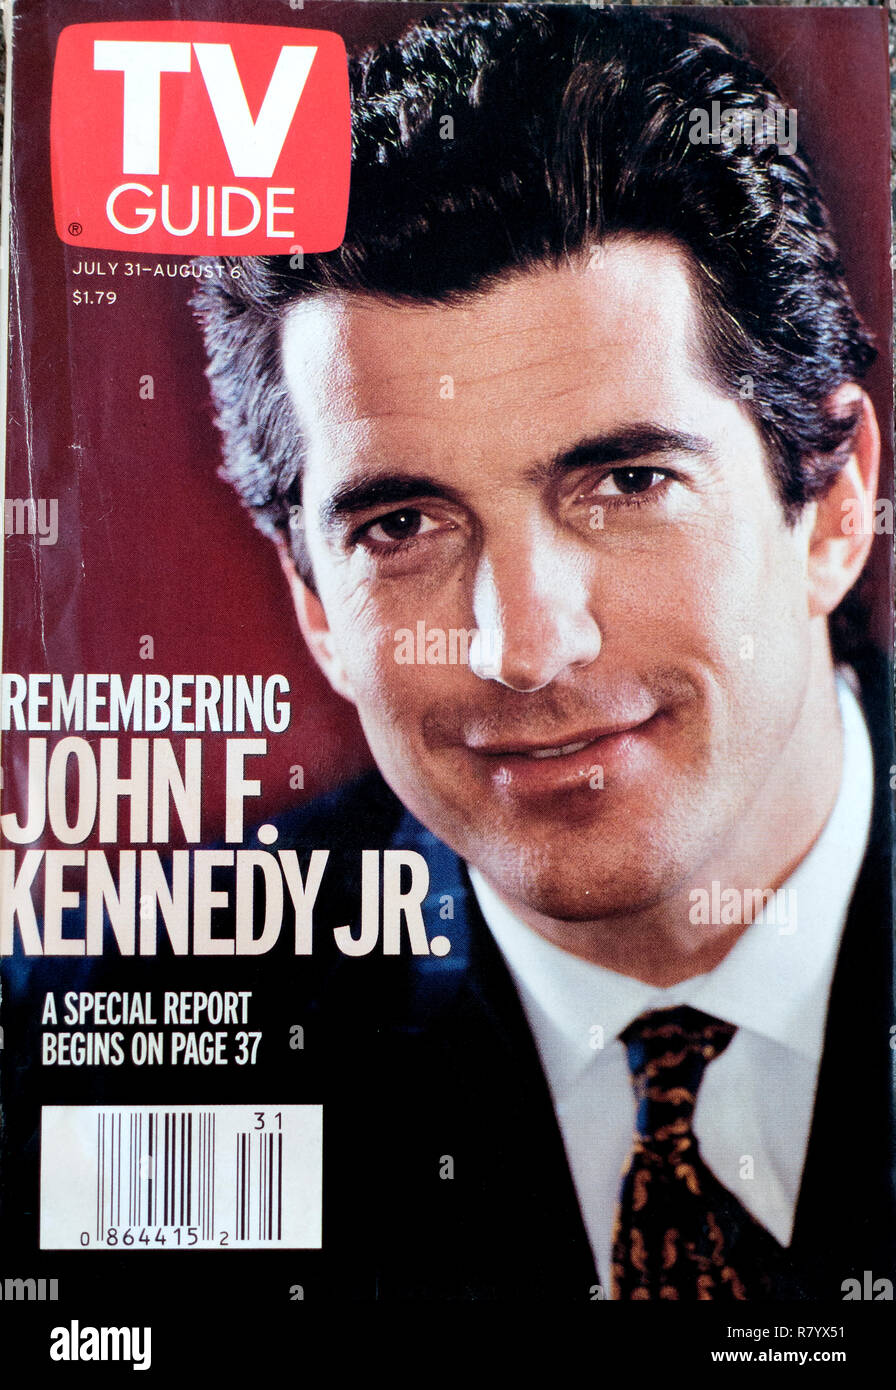 TV Guide Magazine with cover photograph Remembering John F. Kennedy Jr. St Paul Minnesota MN USA - Stock Image